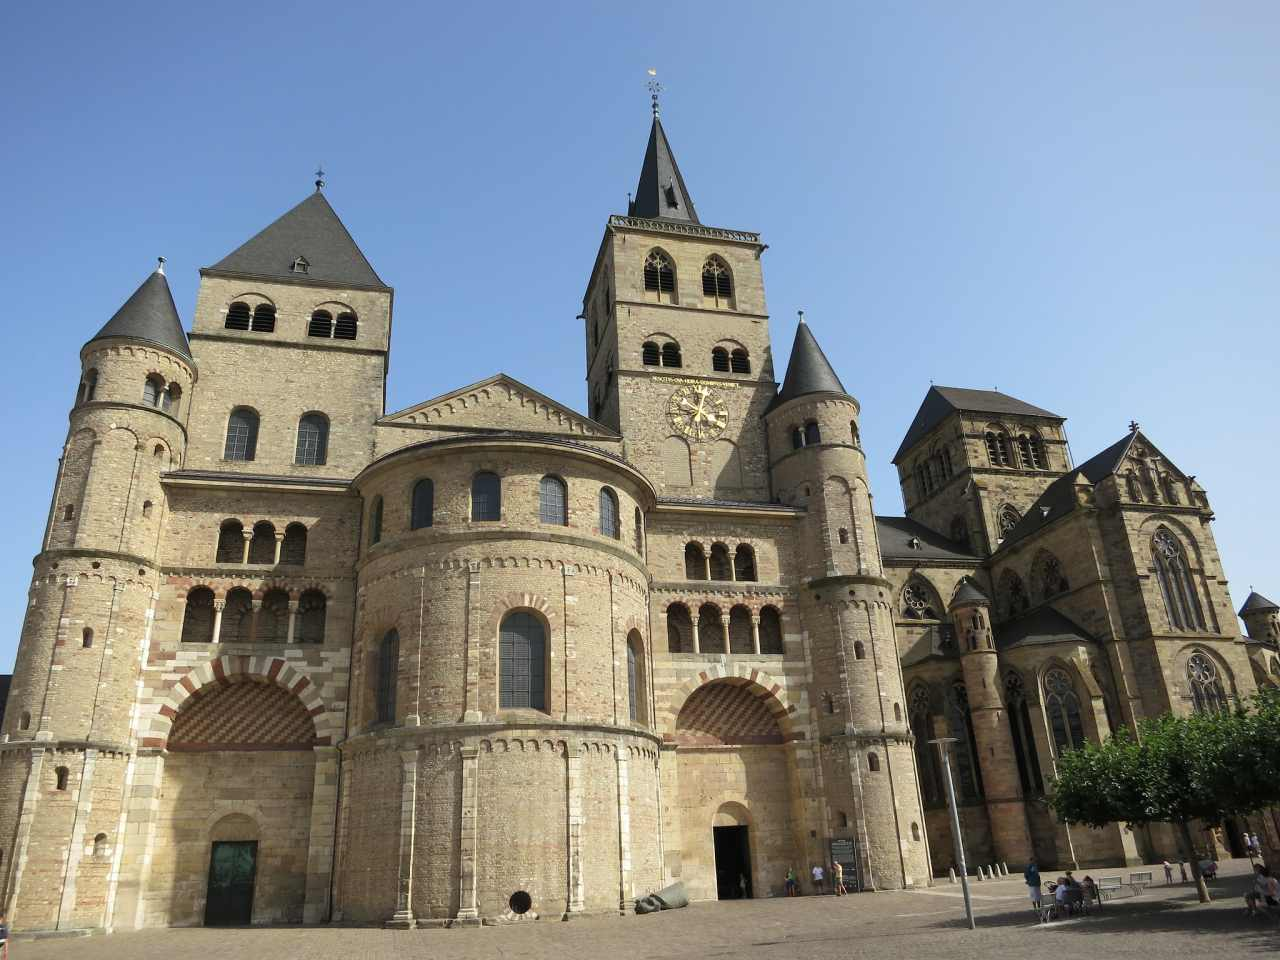 High Cathedral of Saint Peter, Trier, Germany